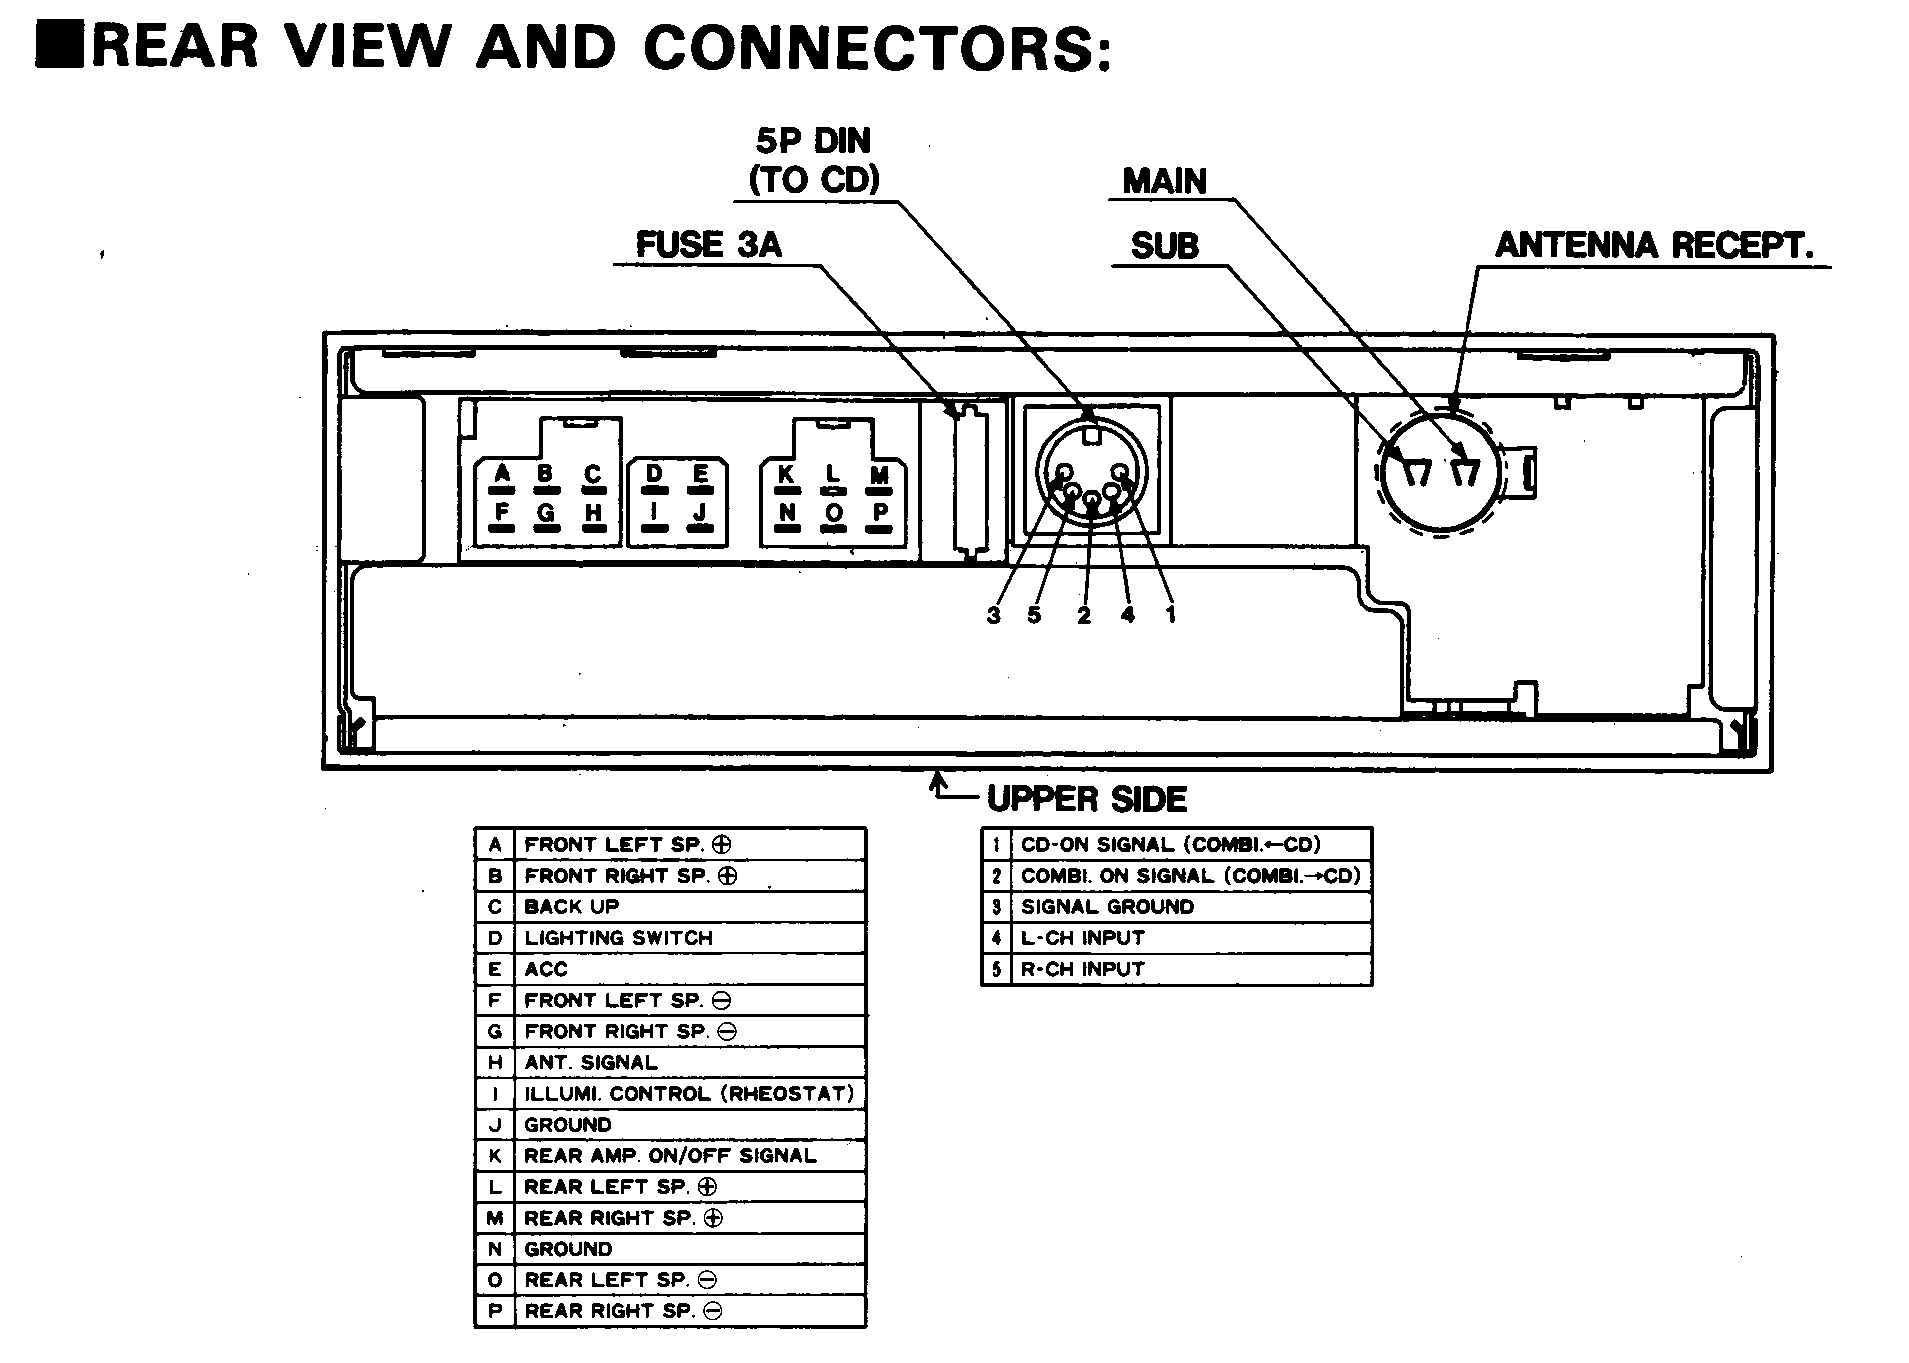 Car Wiring Diagram Free : Pioneer car stereo wiring diagram free download